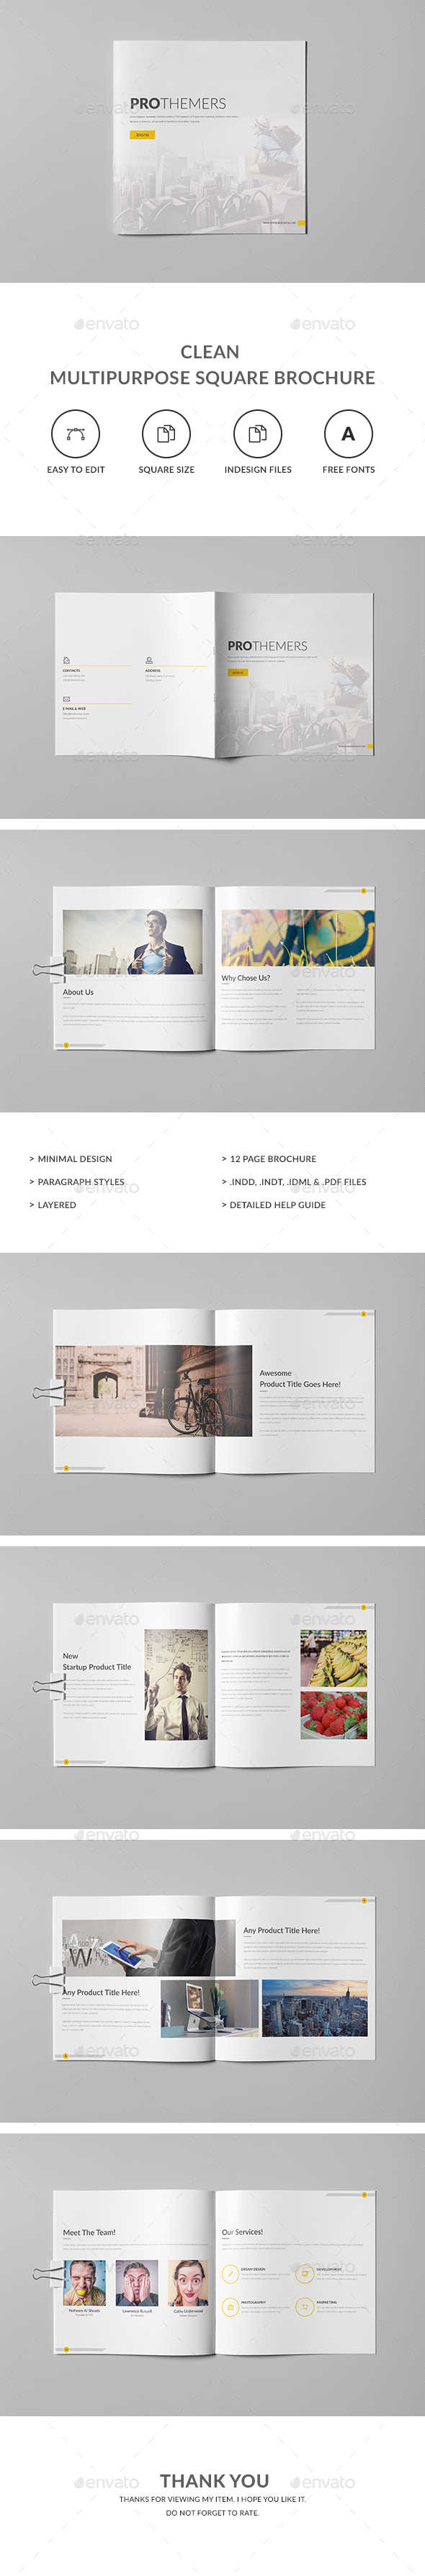 Clean Multipurpose Square Brochure Template - Corporate Brochures